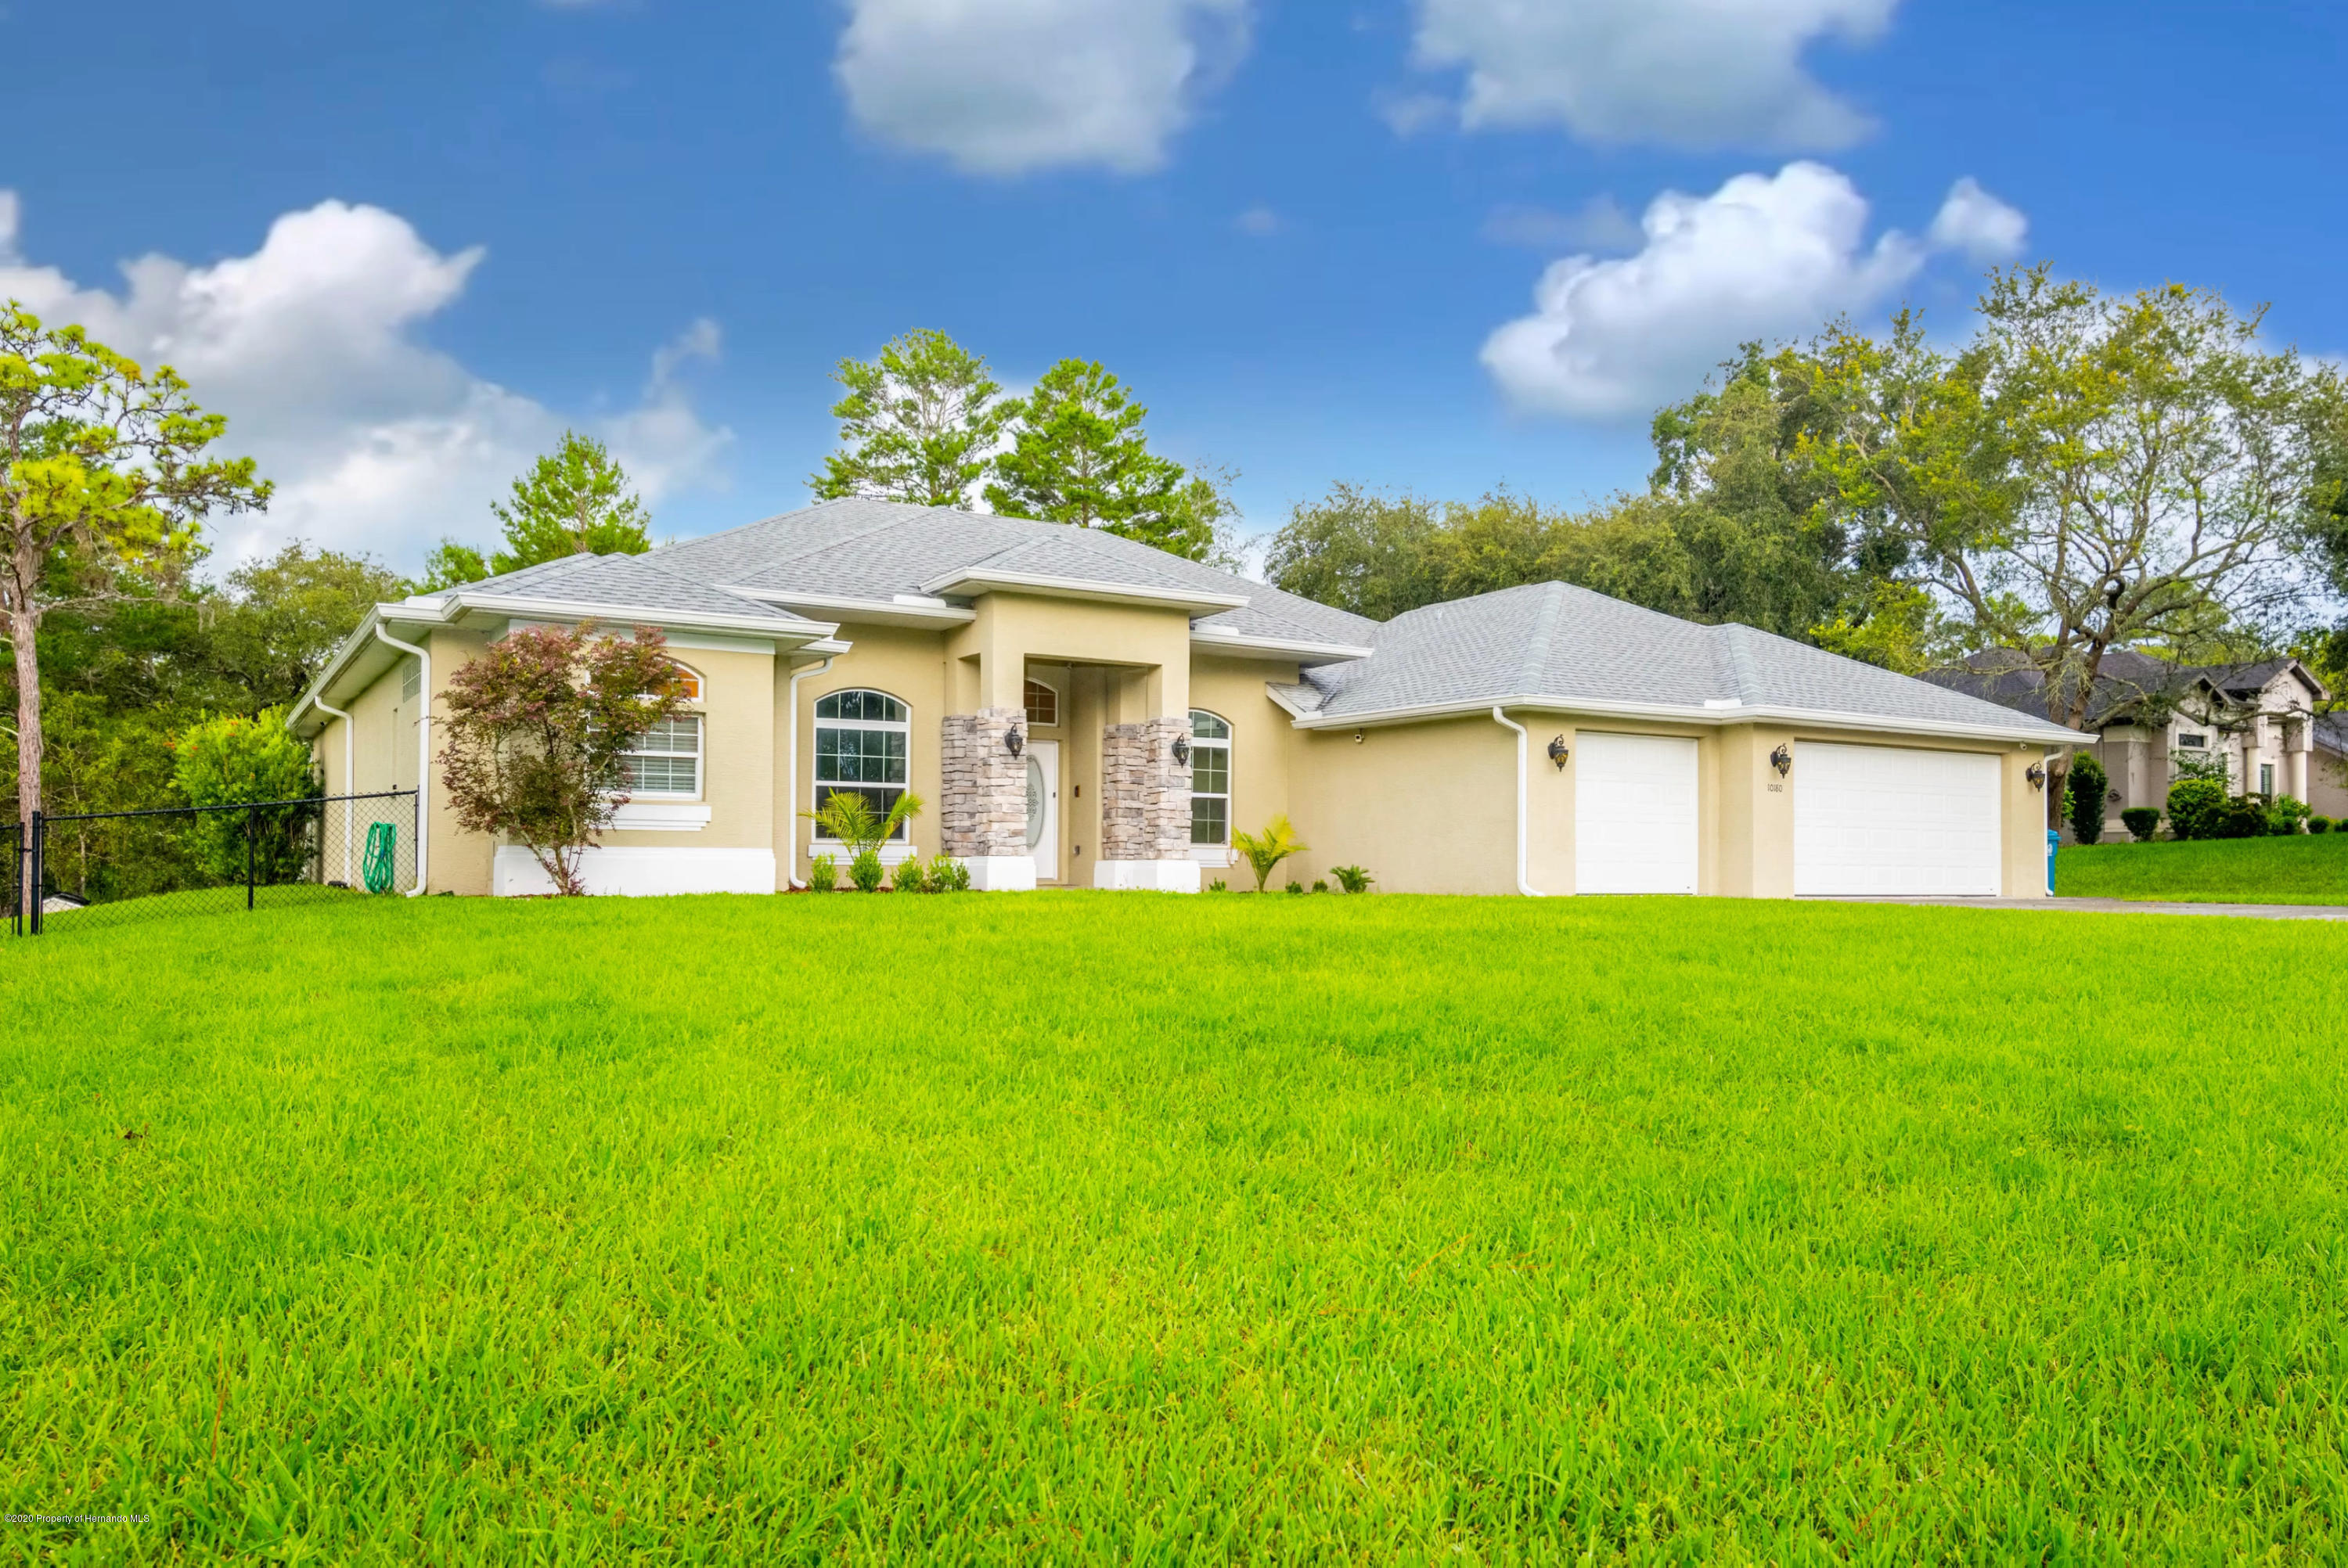 Details for 10180 Feather Ridge Drive, Weeki Wachee, FL 34613